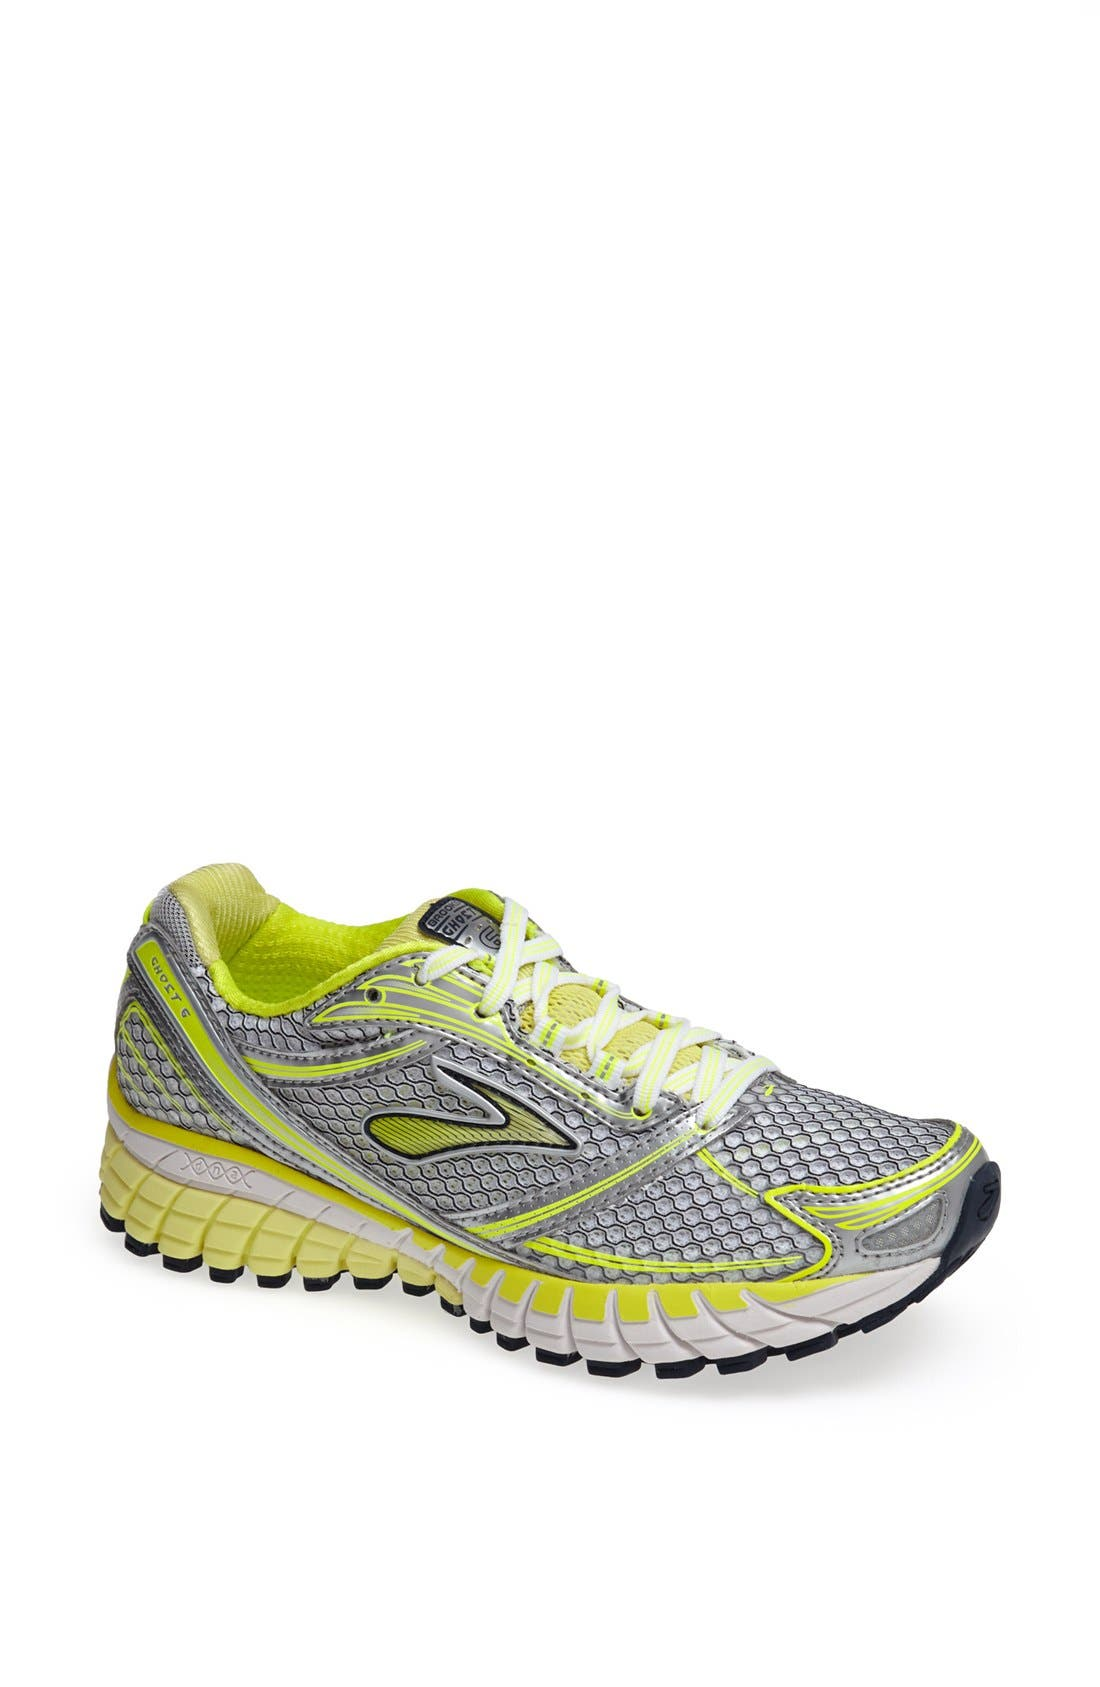 Alternate Image 1 Selected - Brooks 'Ghost 6' Running Shoe (Women) (Regular Retail Price: $109.95)